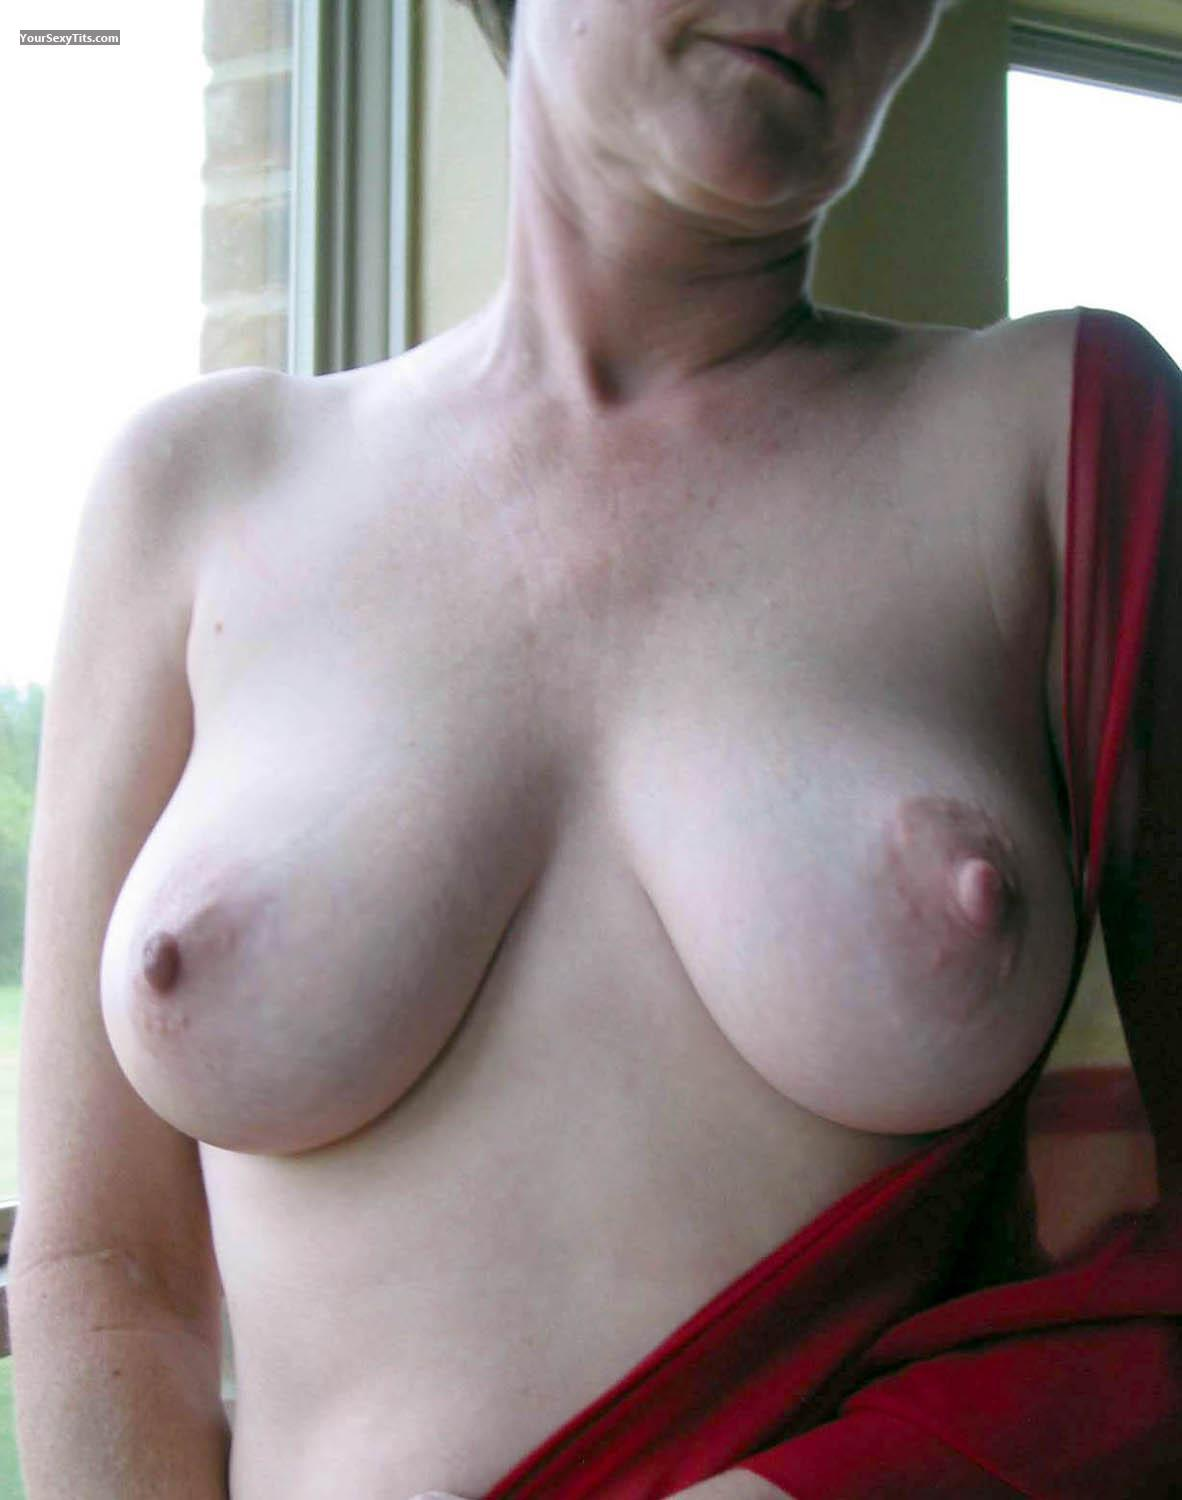 Tit Flash: Wife's Big Tits - Peaches from United States